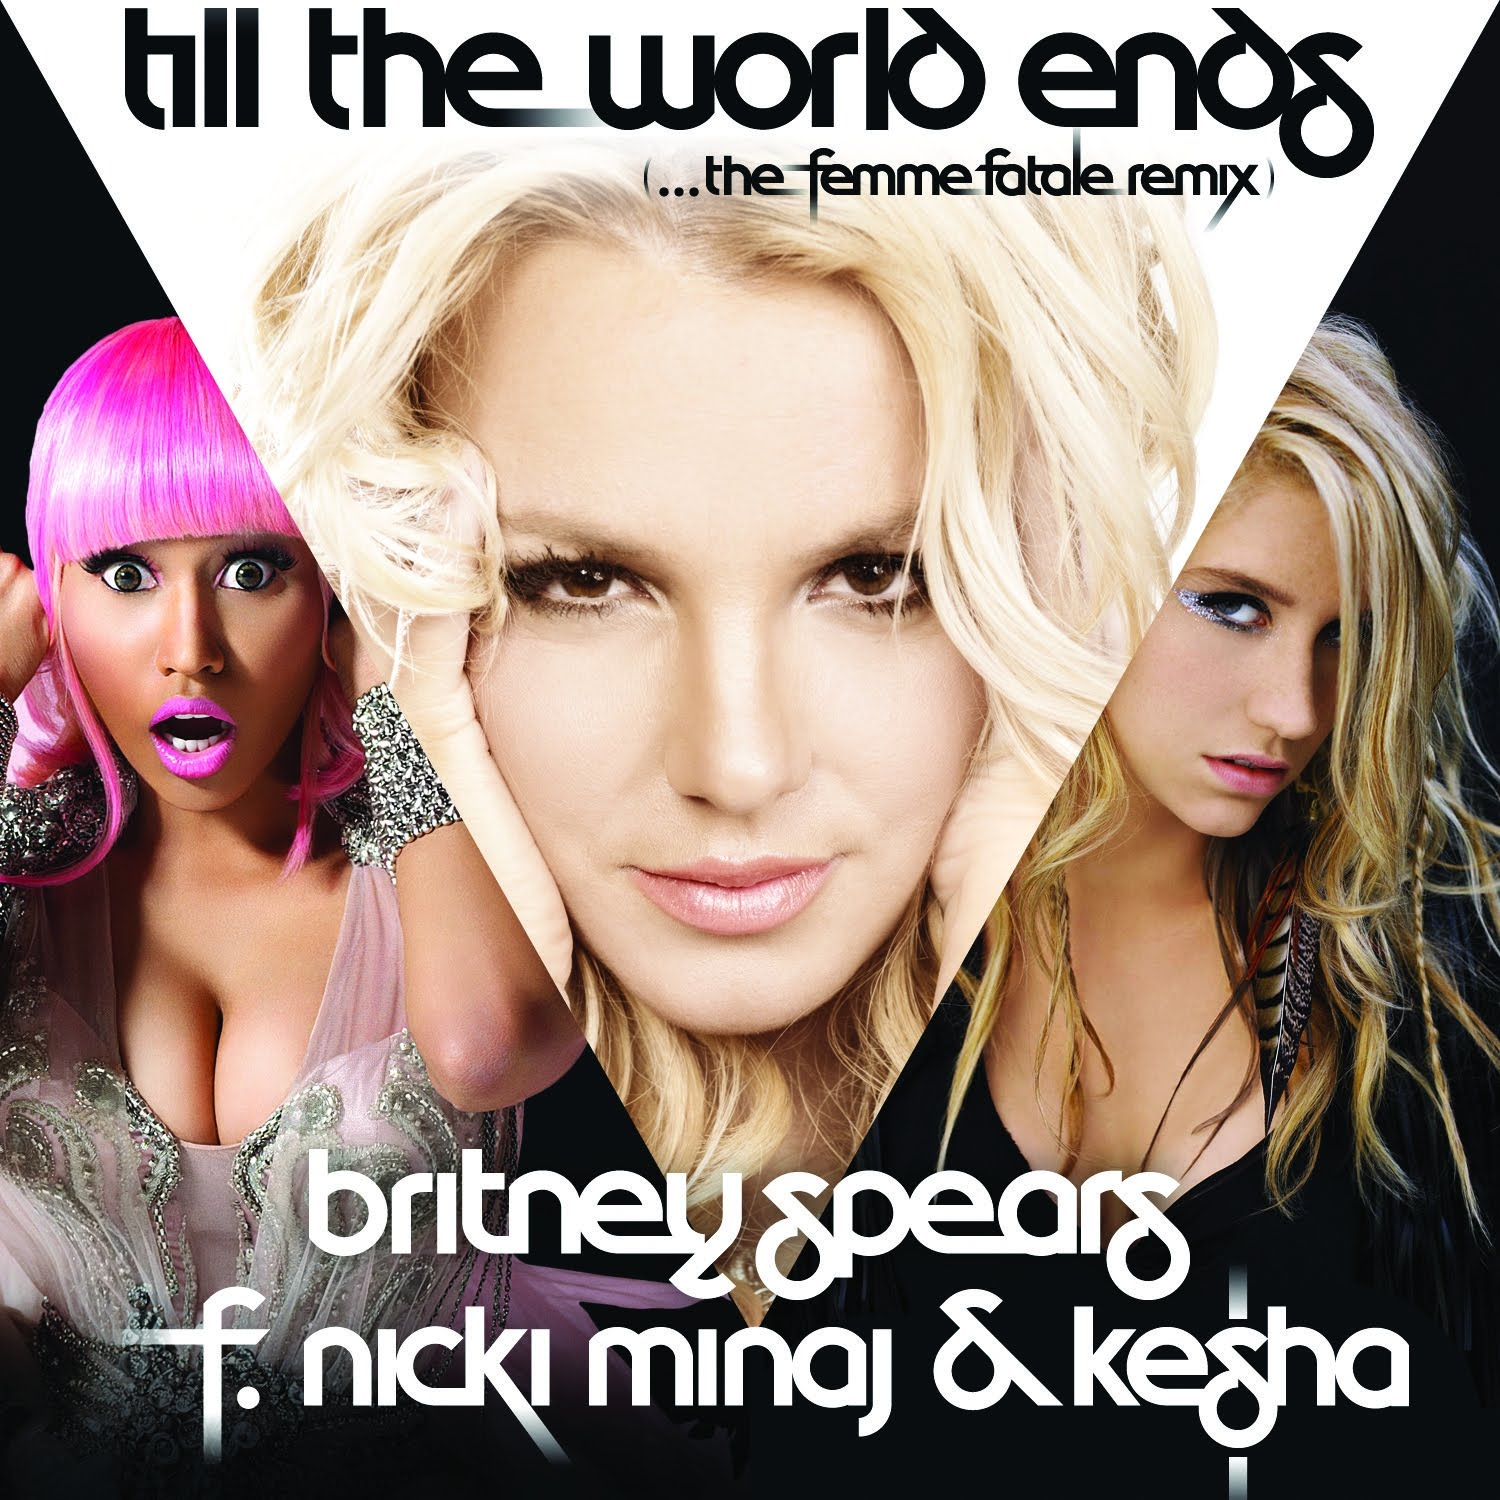 http://2.bp.blogspot.com/-9EZFdme_jZc/TbiGSN8XFrI/AAAAAAAAAc4/ufytjBK8ux4/s1600/Britney-Spears-Till-The-World-Ends-The-Femme-Fatale-Remix-feat.-Nicki-Minaj-Keha-Official-Single-Cover.jpg